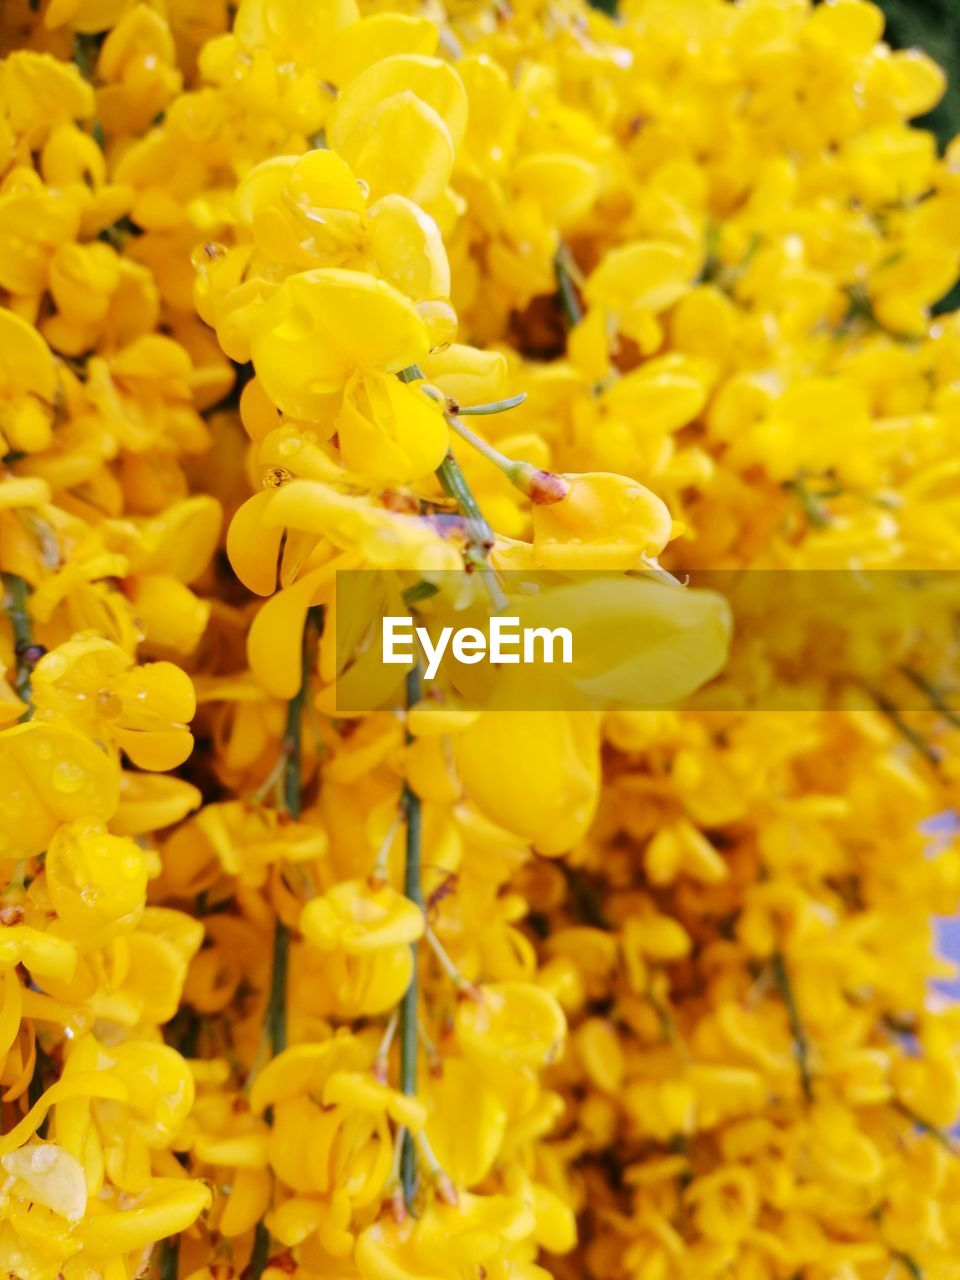 flower, yellow, fragility, freshness, growth, beauty in nature, petal, nature, blossom, selective focus, vibrant color, springtime, close-up, full frame, no people, plant, backgrounds, flower head, outdoors, blooming, day, mustard plant